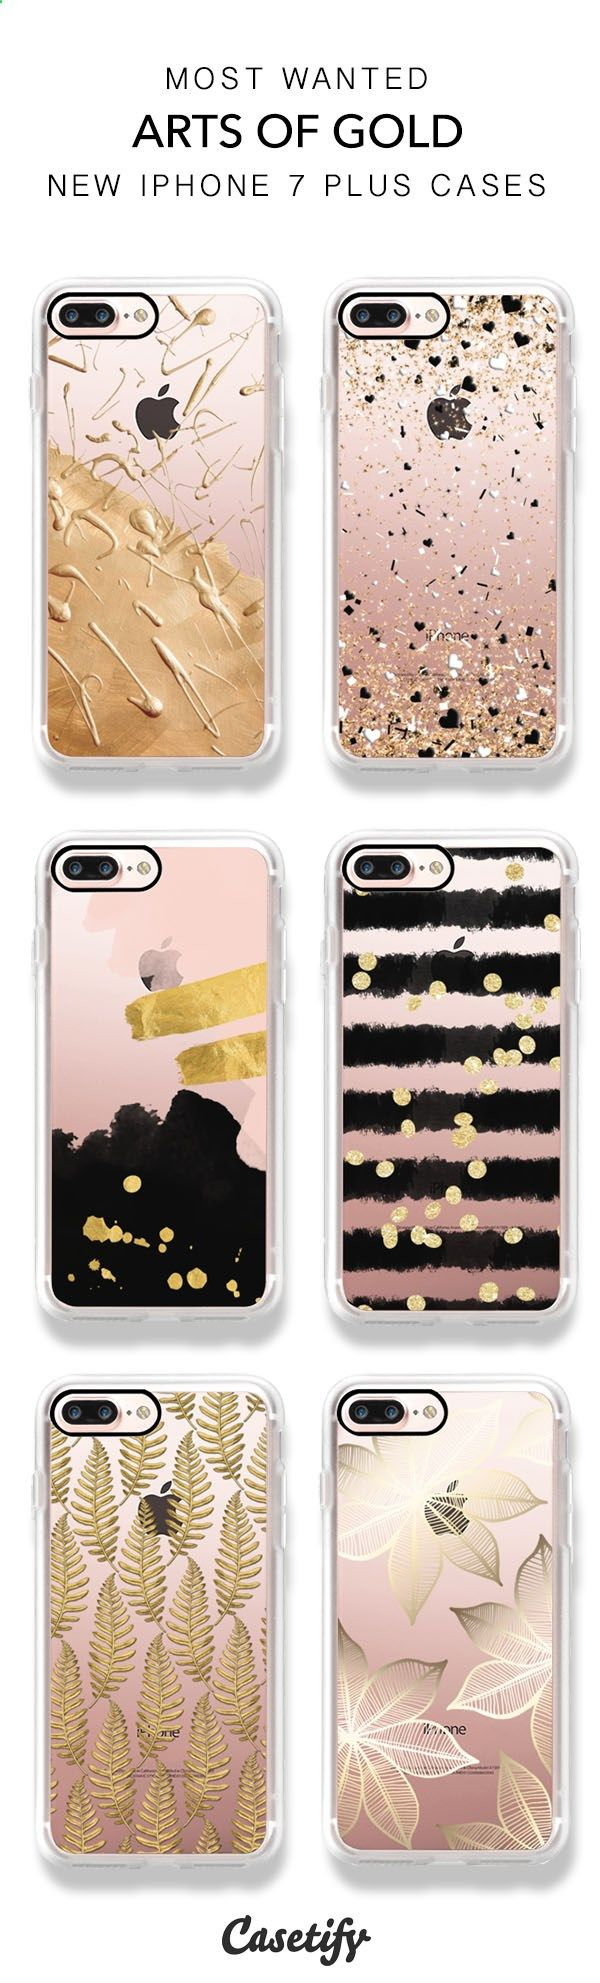 Best selling Gold and Bold iPhone 7 and iPhone 7 Plus cases. Shop the Art of Gold Collection here > www.casetify.com/...